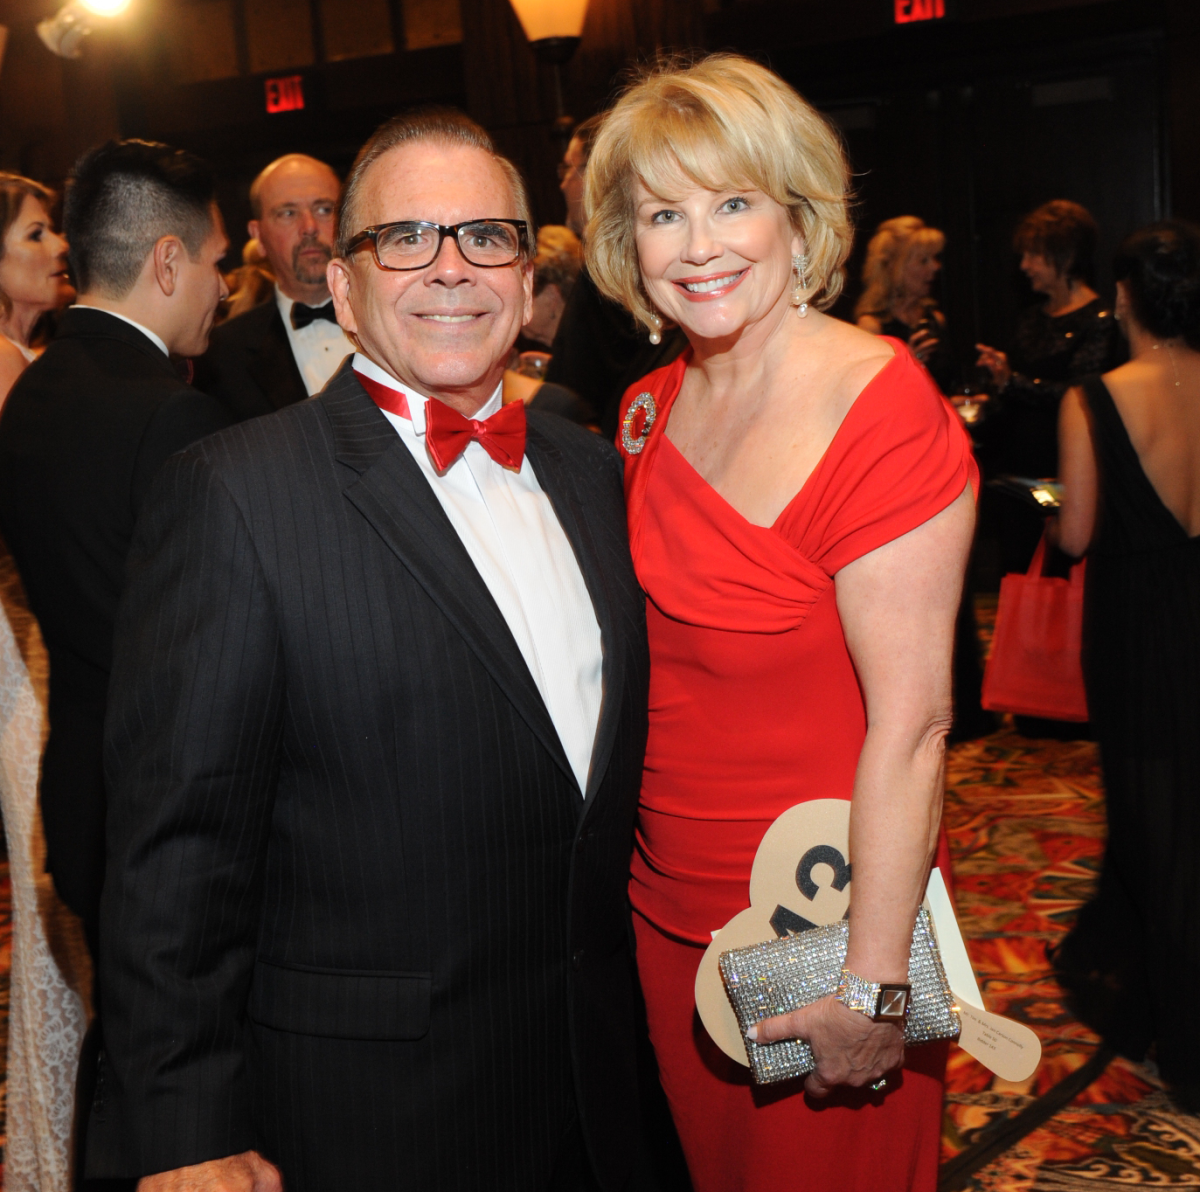 Houston, Heart Ball, Feb 2017, Tim Connolly, Jan Carson